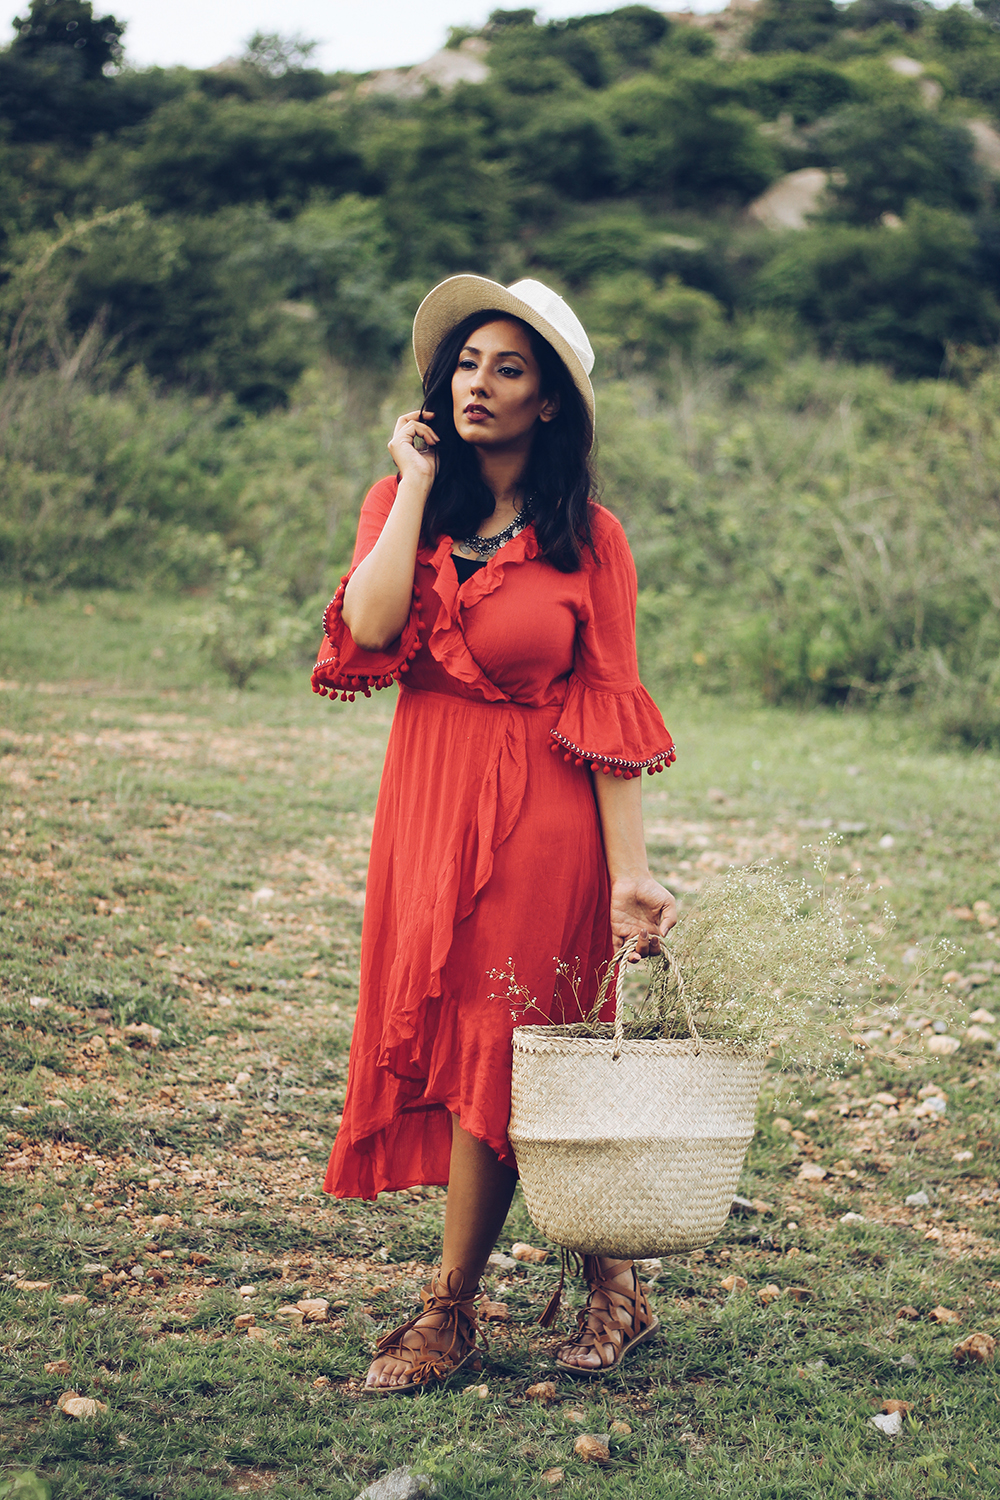 Red Maxi ; Ruflles ; Tan ; Lookbook ; Outfit ; fashion photography ; Red Lips ; Zaful Maxi ; ootd ; fall look ; Country fashion ; Hat ; Monsoon Story ; Flowers ; sunset ; strong ; Dark ; summer fashion ; summer outfit ; spring ; fall 18 ; Hyderabad ; Editorial ; Naznin ; Naznin Suhaer ; dusky; model ; indian blogger ; hyderabad fashion bloggers ; hyderabad bloggers ; hyderabad fashion blogger ; I Dress for the Applause ;